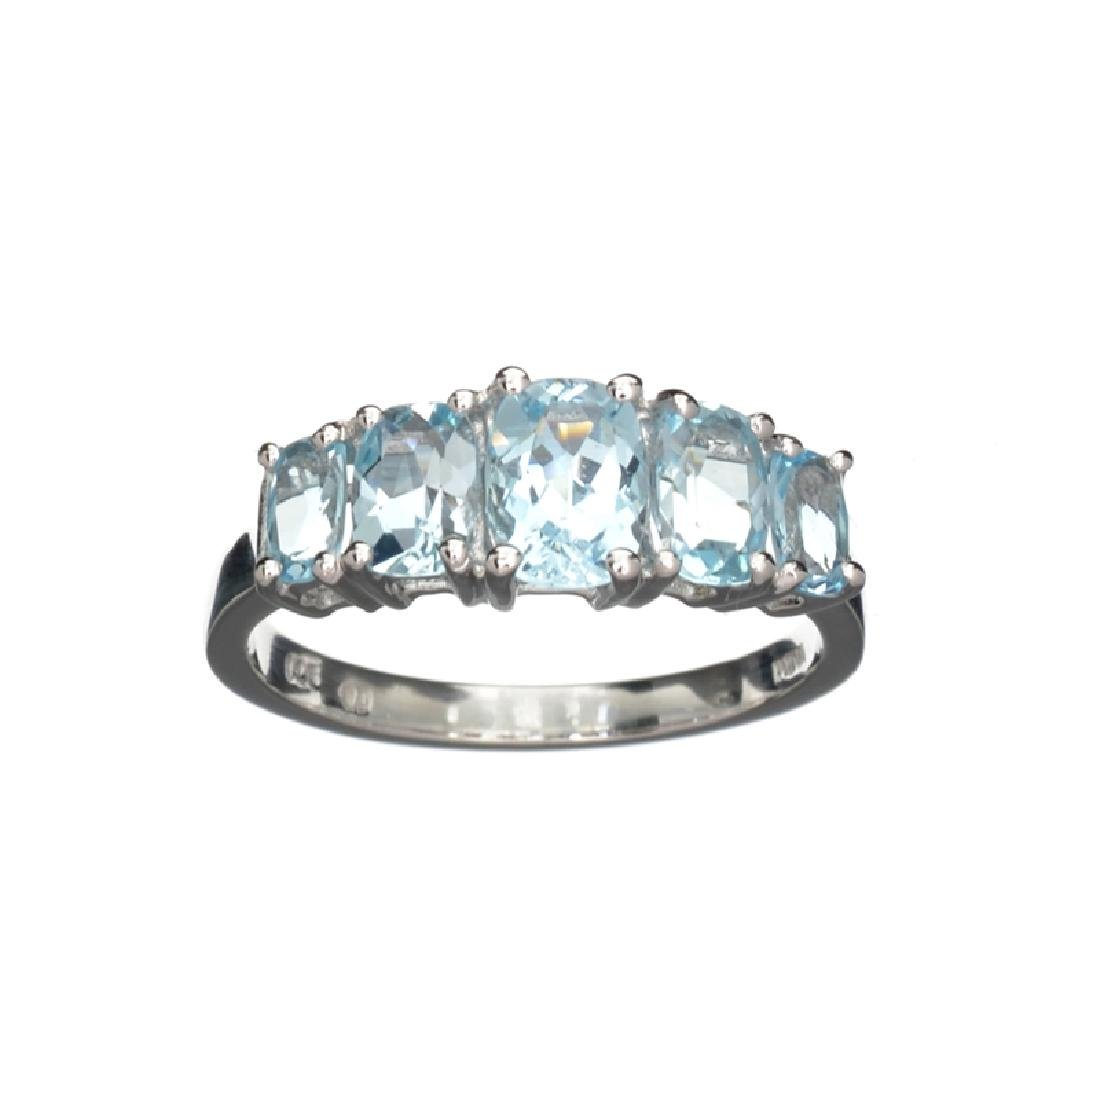 APP: 0.3k Fine Jewelry 3.00CT Cushion Cut Blue Topaz